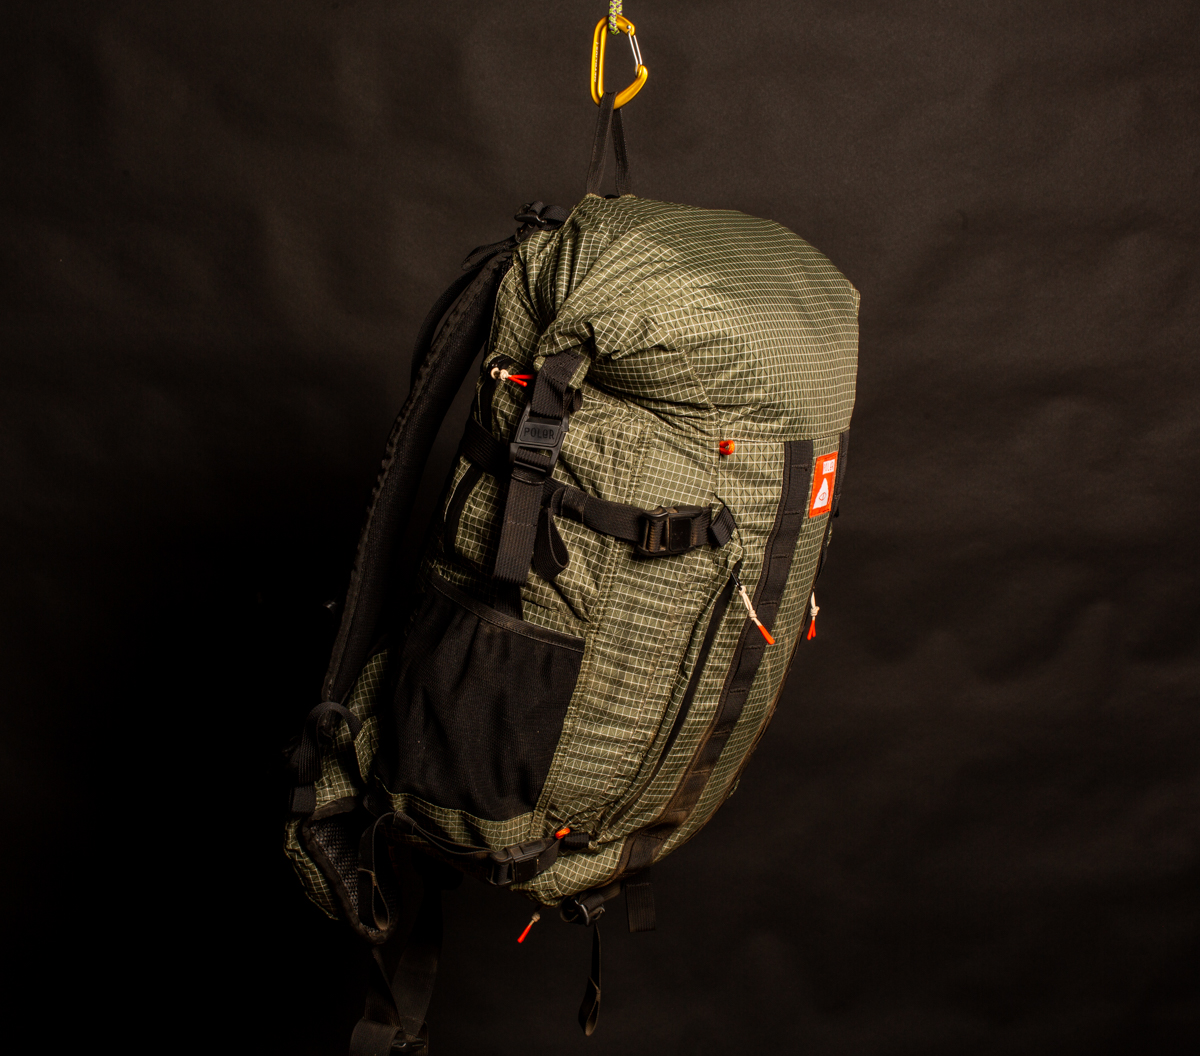 Poler Rolltop Backpacking pack | $45 - Used once as a photo prop on a backpacking trip. Retails for $150+